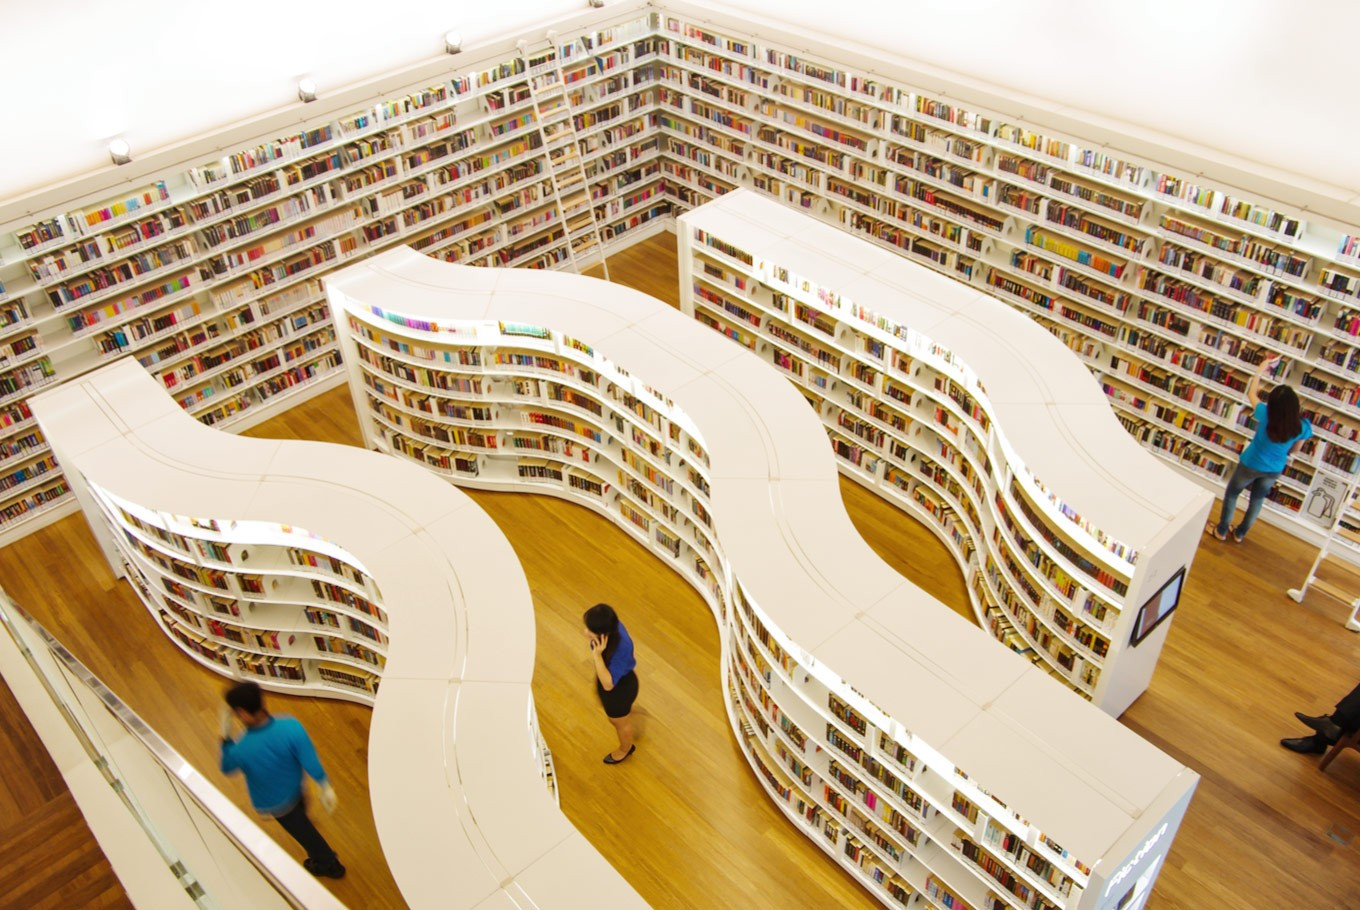 Must-visit places for bookworms in Singapore